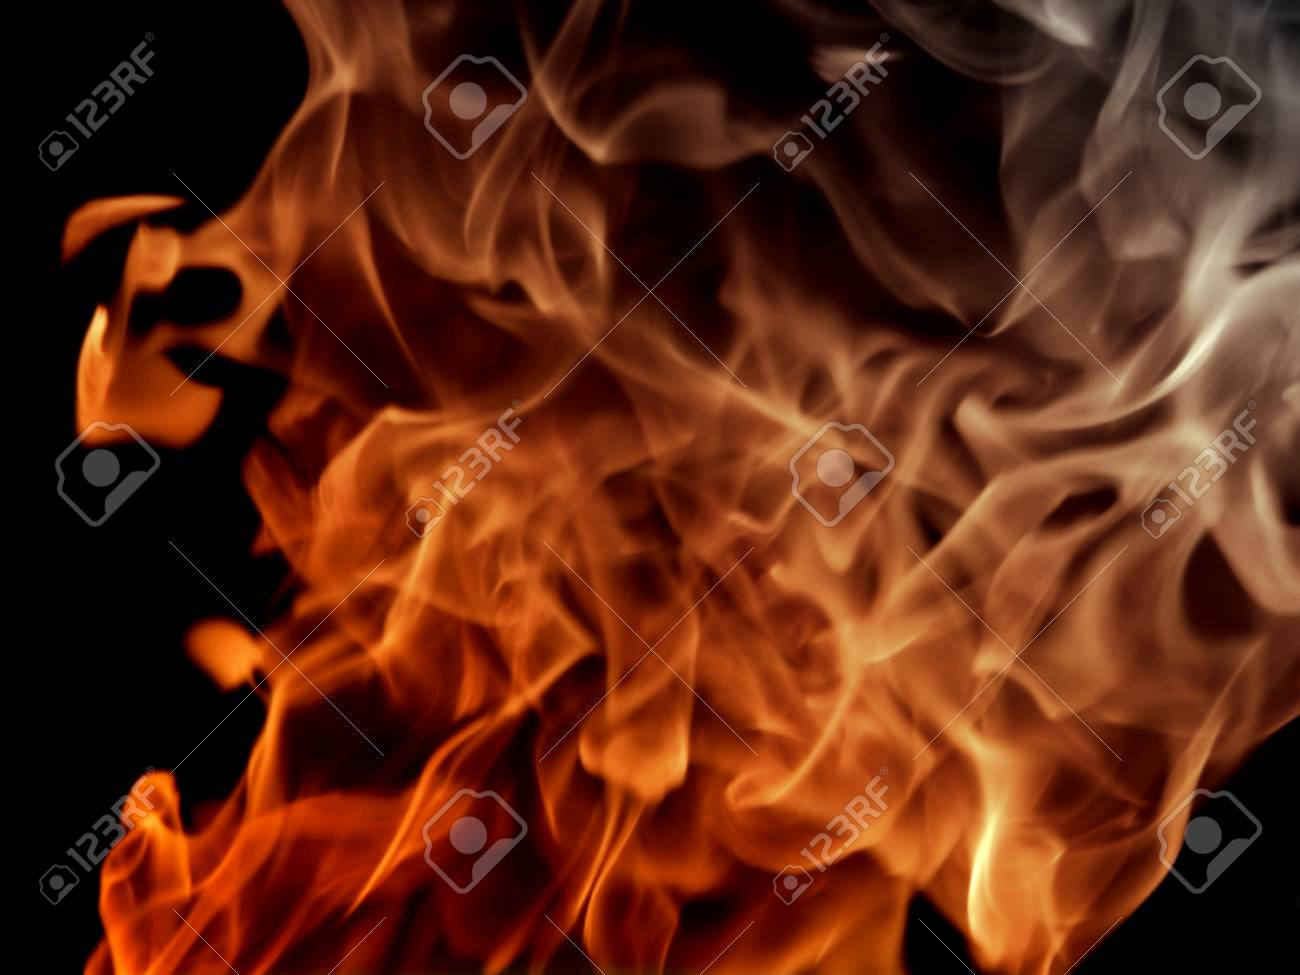 Texture Fire Flame With Smoke On Black Background Stock Photo Picture And Royalty Free Image Image 59722038